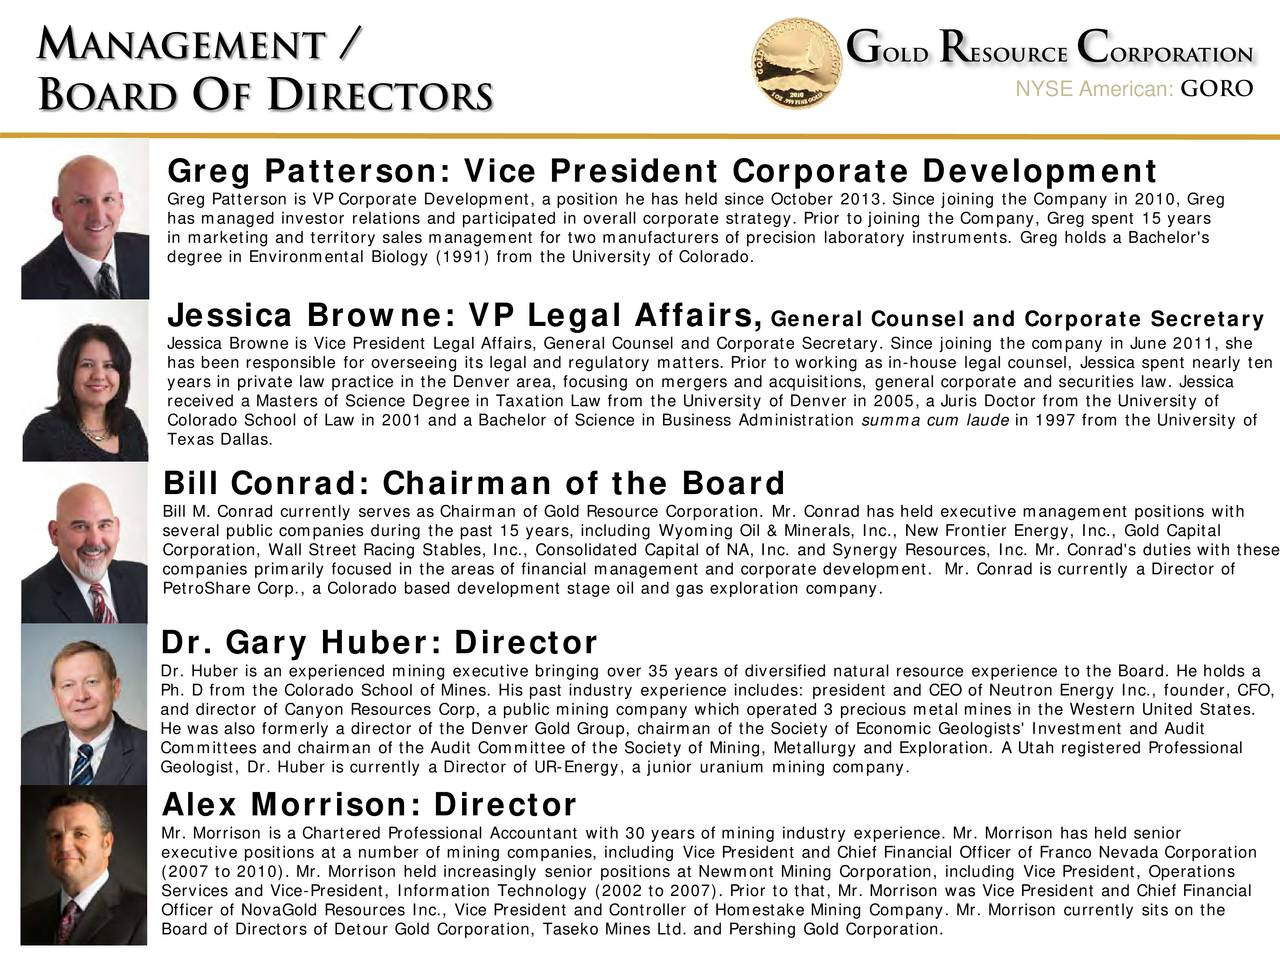 "as baldwin company controller you are responsible for informing the board of directors about its fin Each particular real estate development project that uses the name ""related"", related group or the related group is a licensee of related tm, llc and each such licensee is a separate, single purpose entity that is solely responsible for its own separate development project, contracts, obligations, duties, and responsibilities."